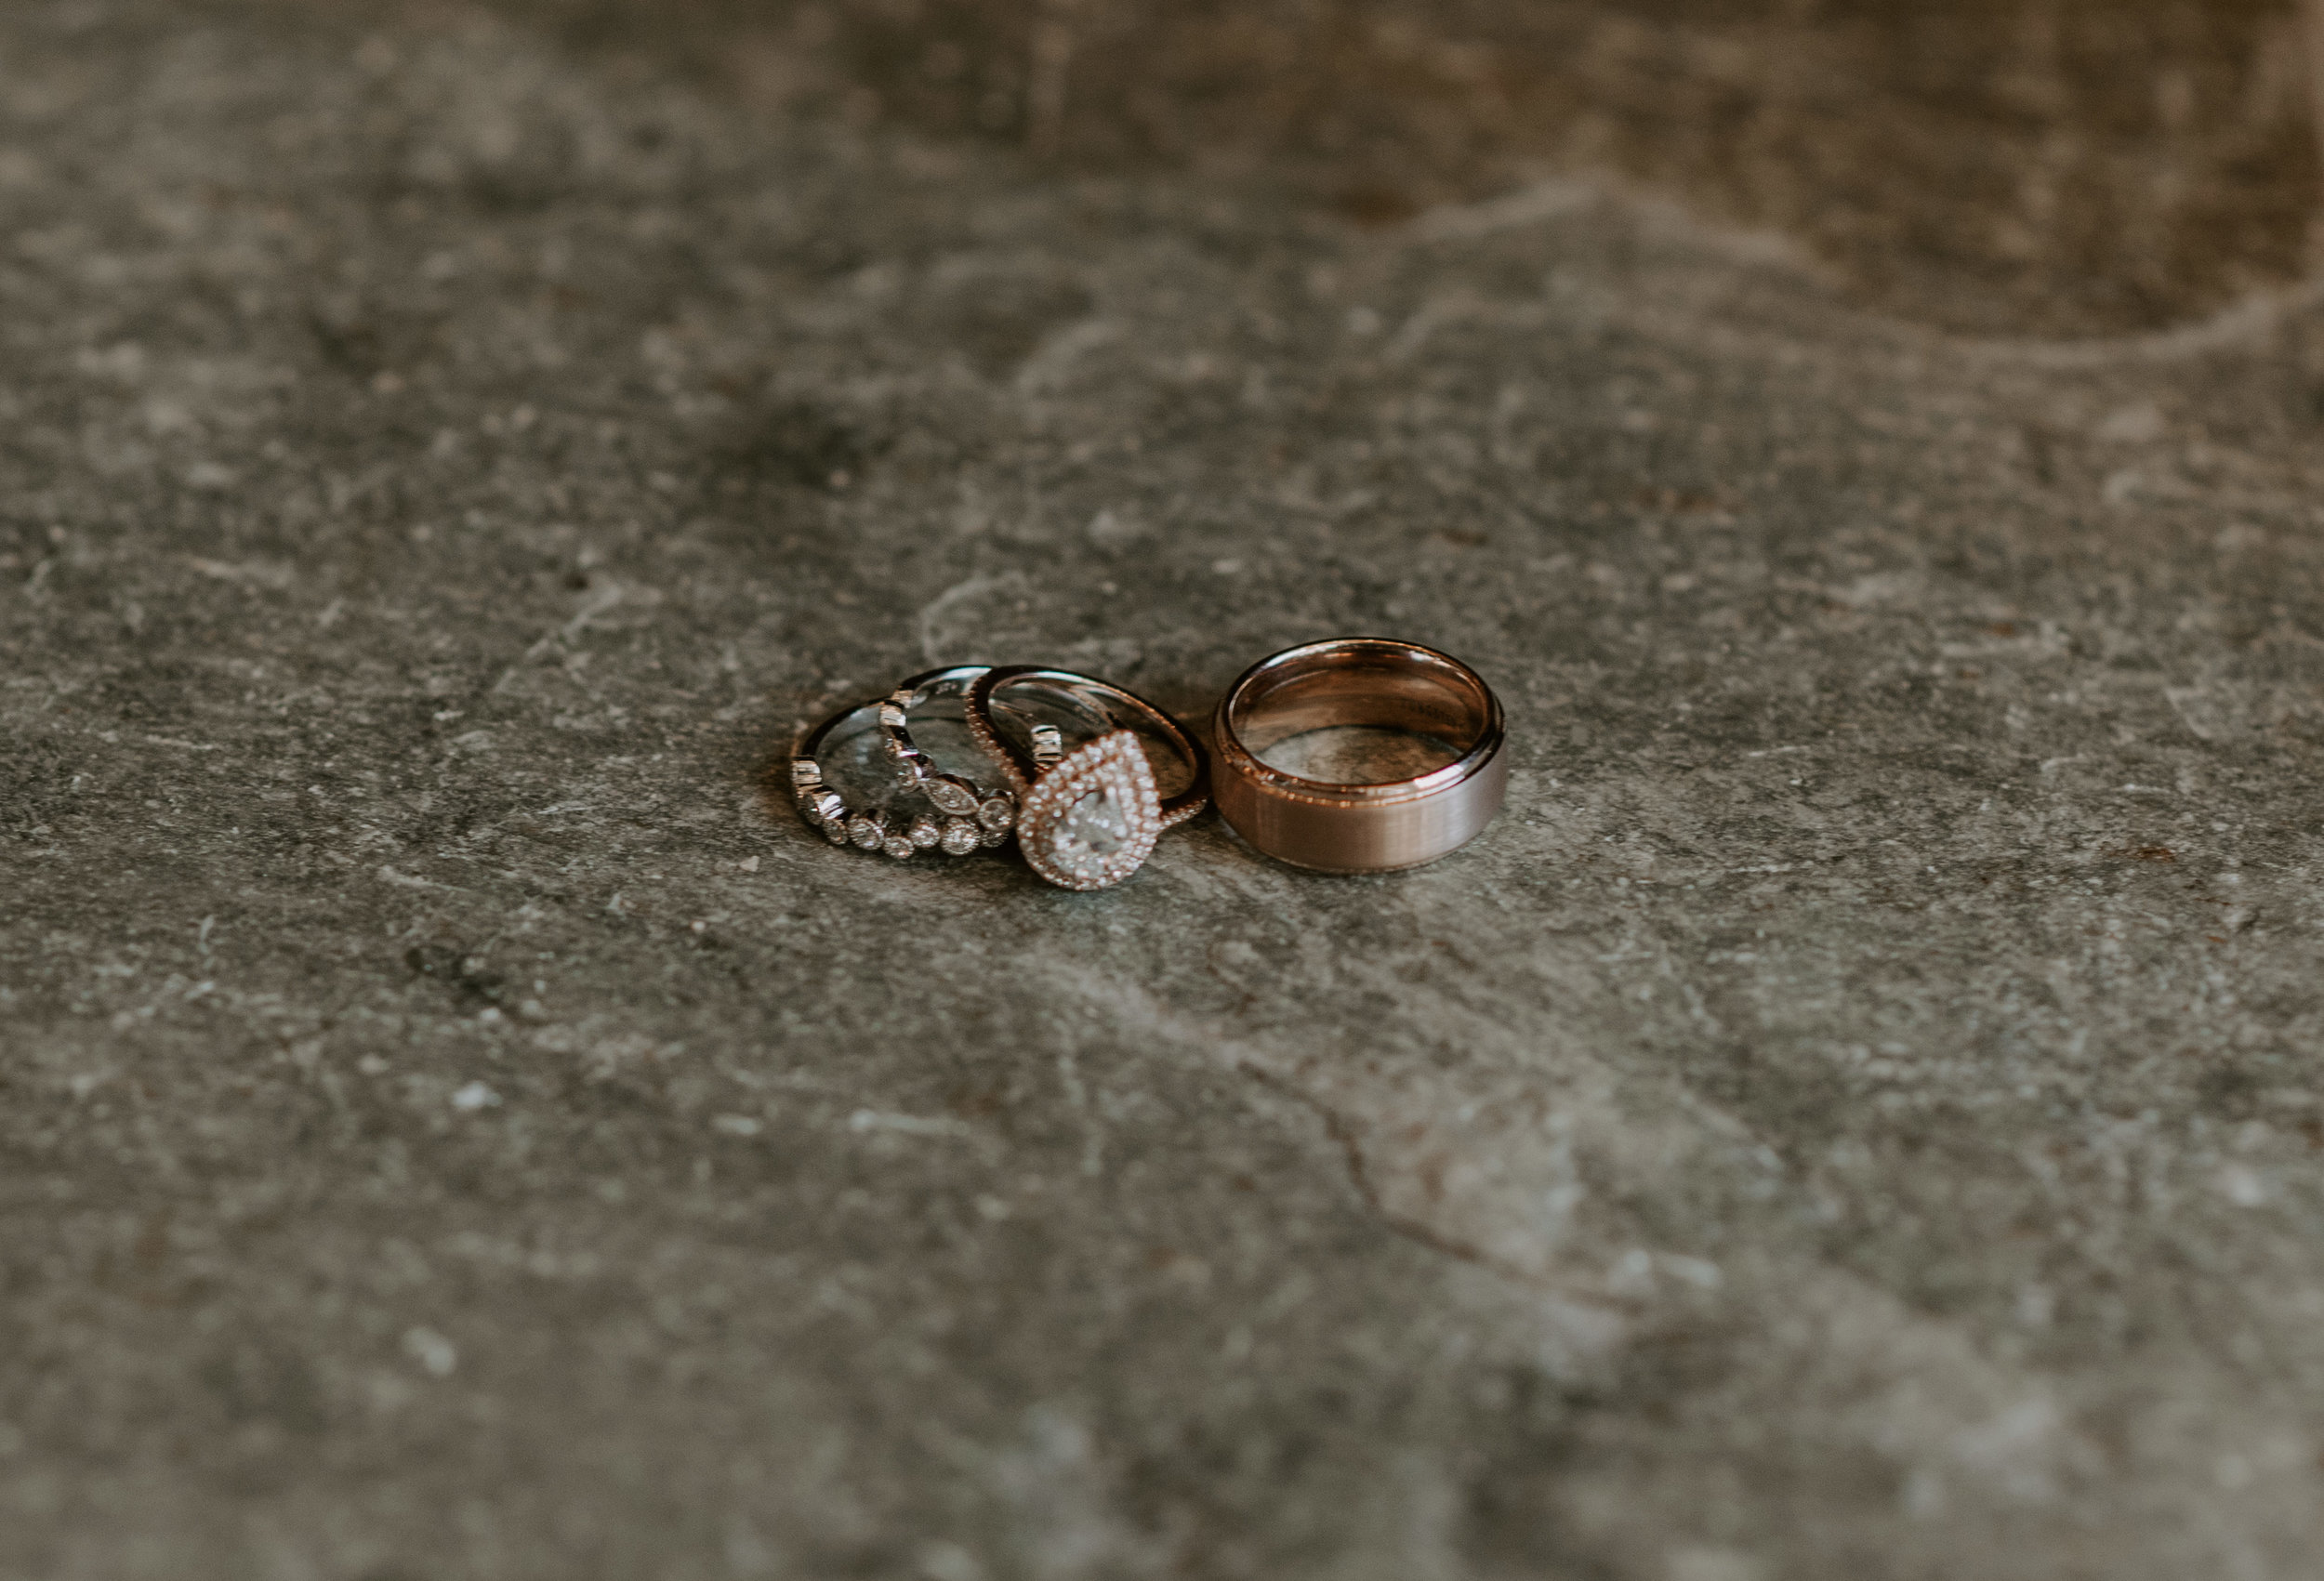 Detail shot of the bride and groom's rings taken by Alyssa Reinhold, a Colorado wedding and elopement photographer.